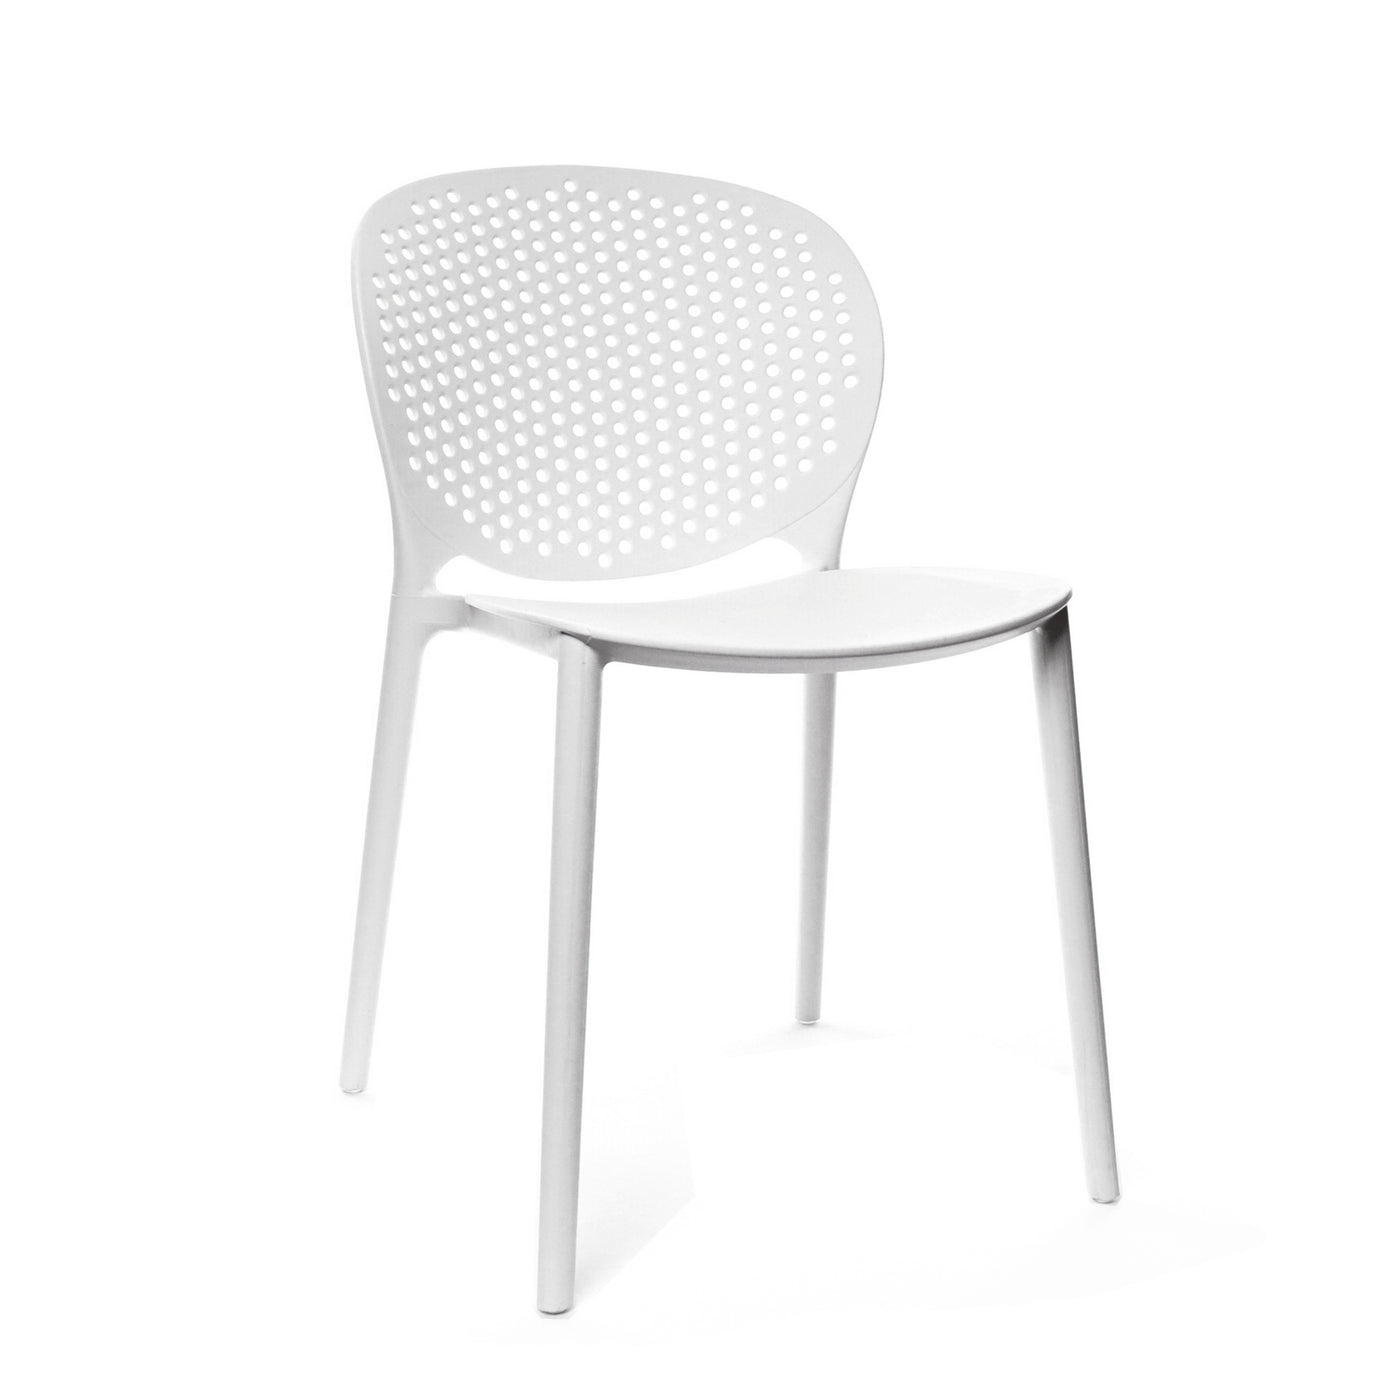 Design Lab MN LS-9603-WHT Muut White Outdoor Dining Chair Set of 4